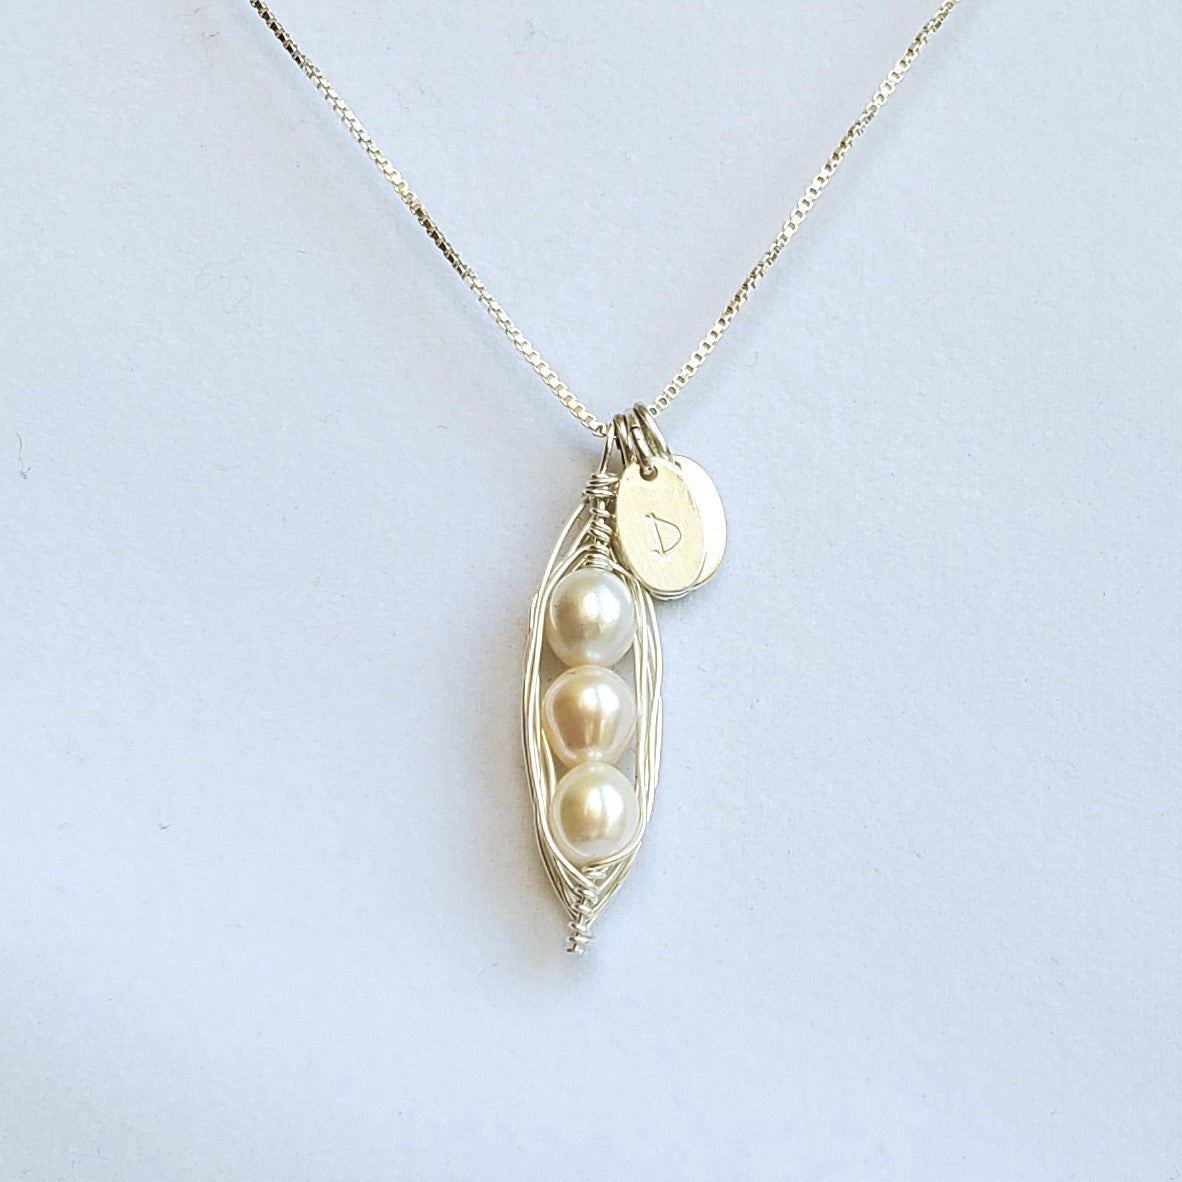 Wire-wrapped sterling silver pea pod necklace with freshwater pearls and initial charms